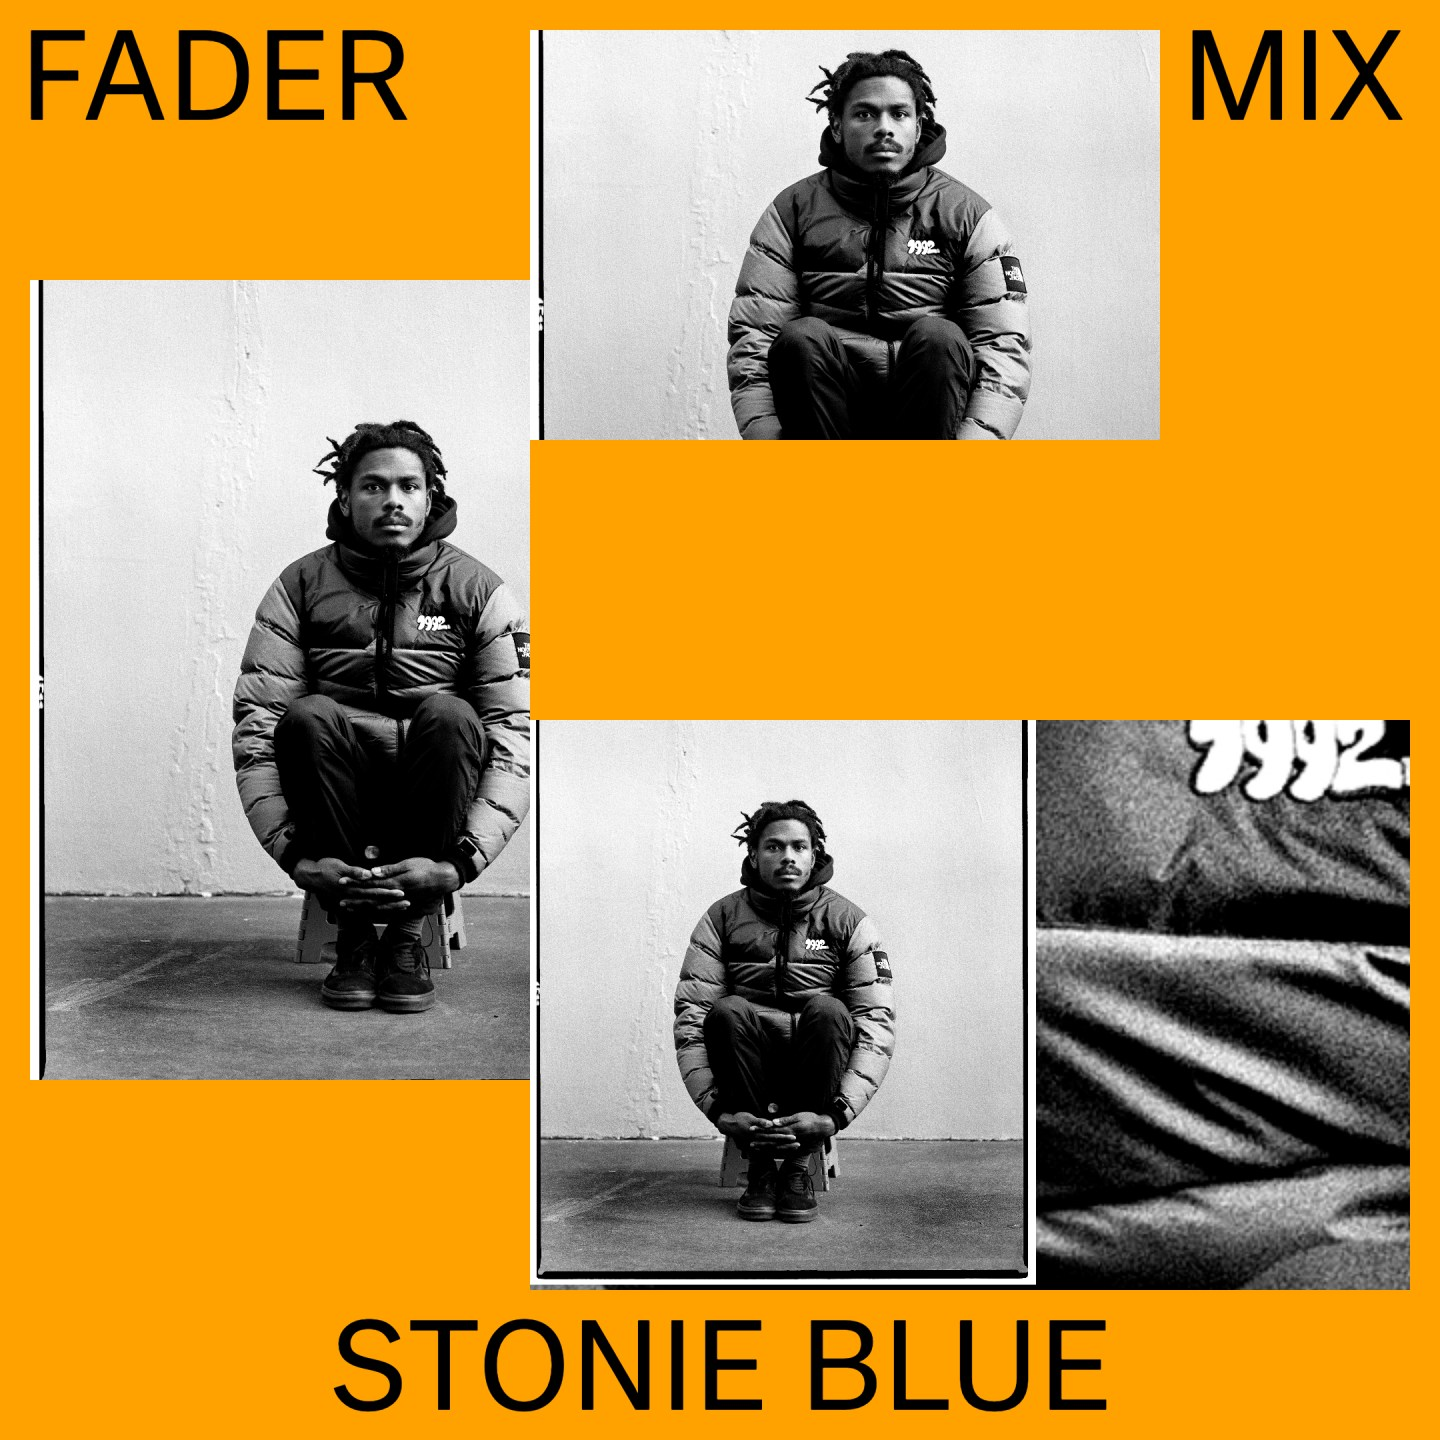 Listen to a new FADER Mix by Stonie Blue